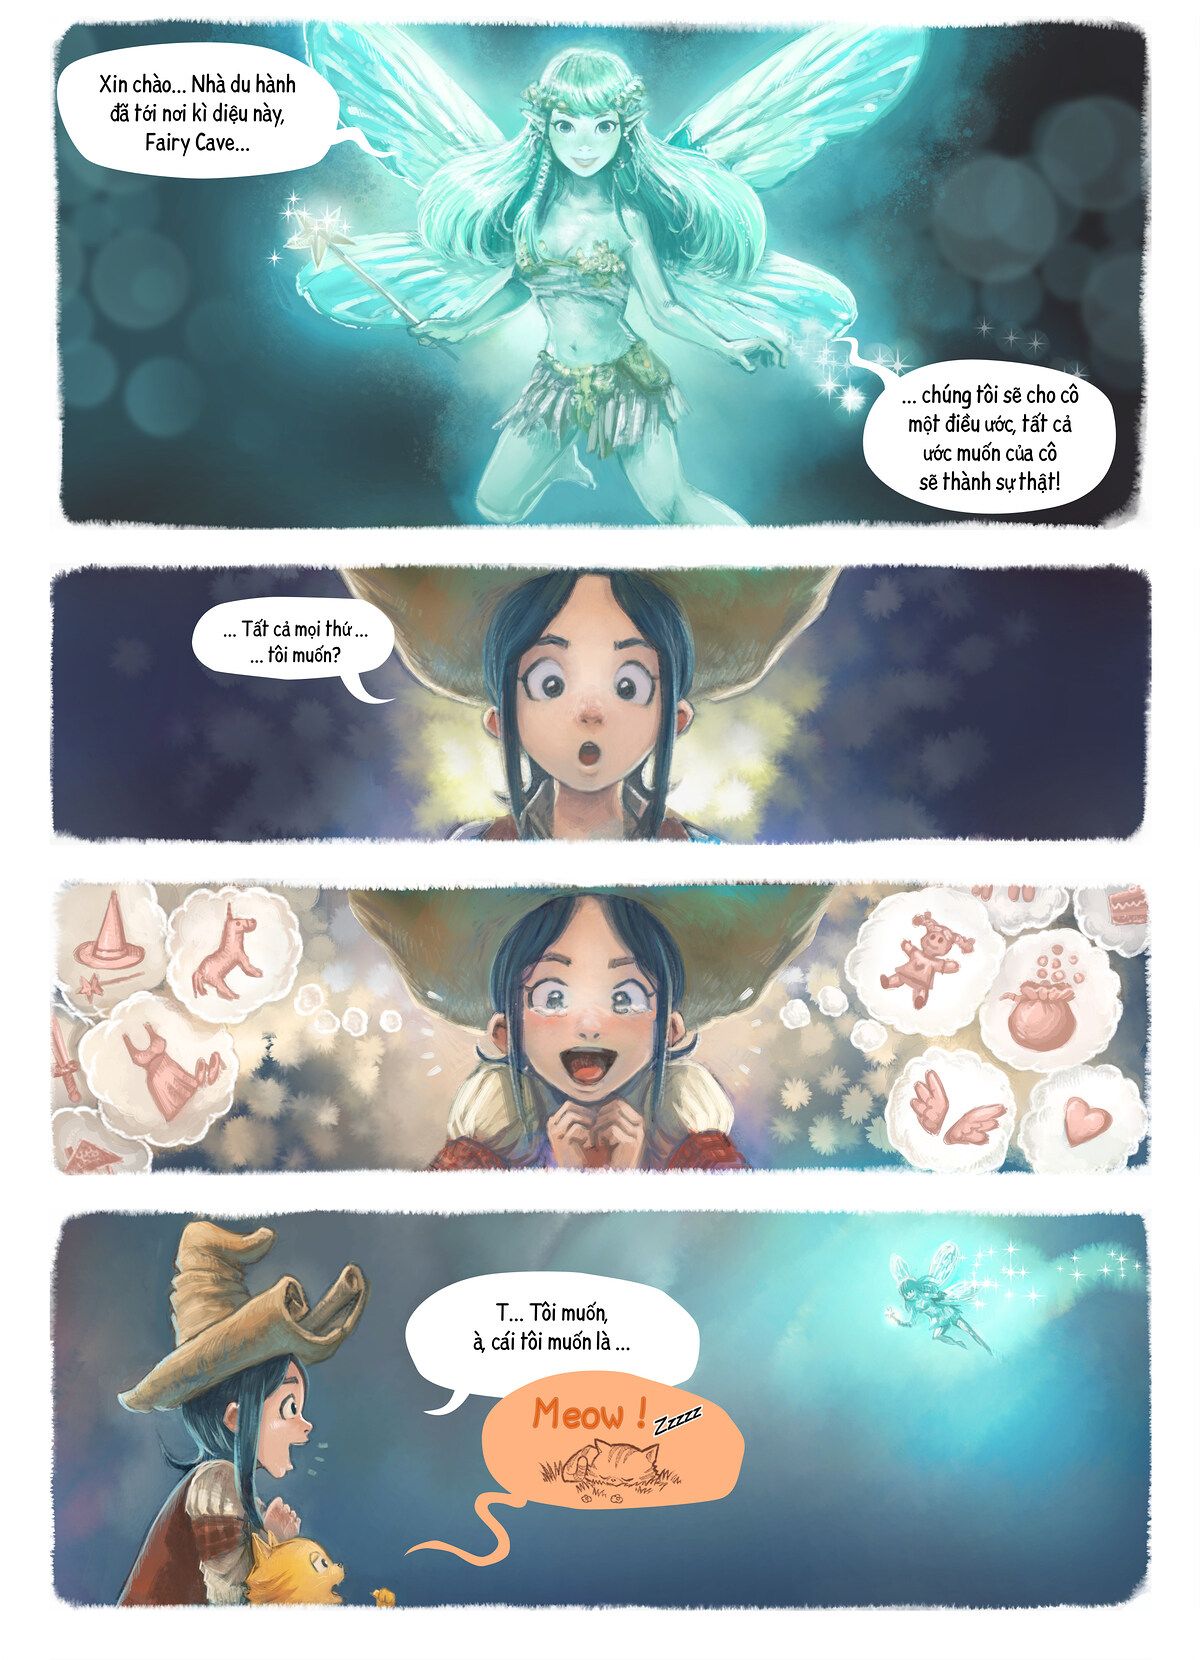 A webcomic page of Pepper&Carrot, Tập 7 [vi], trang 4